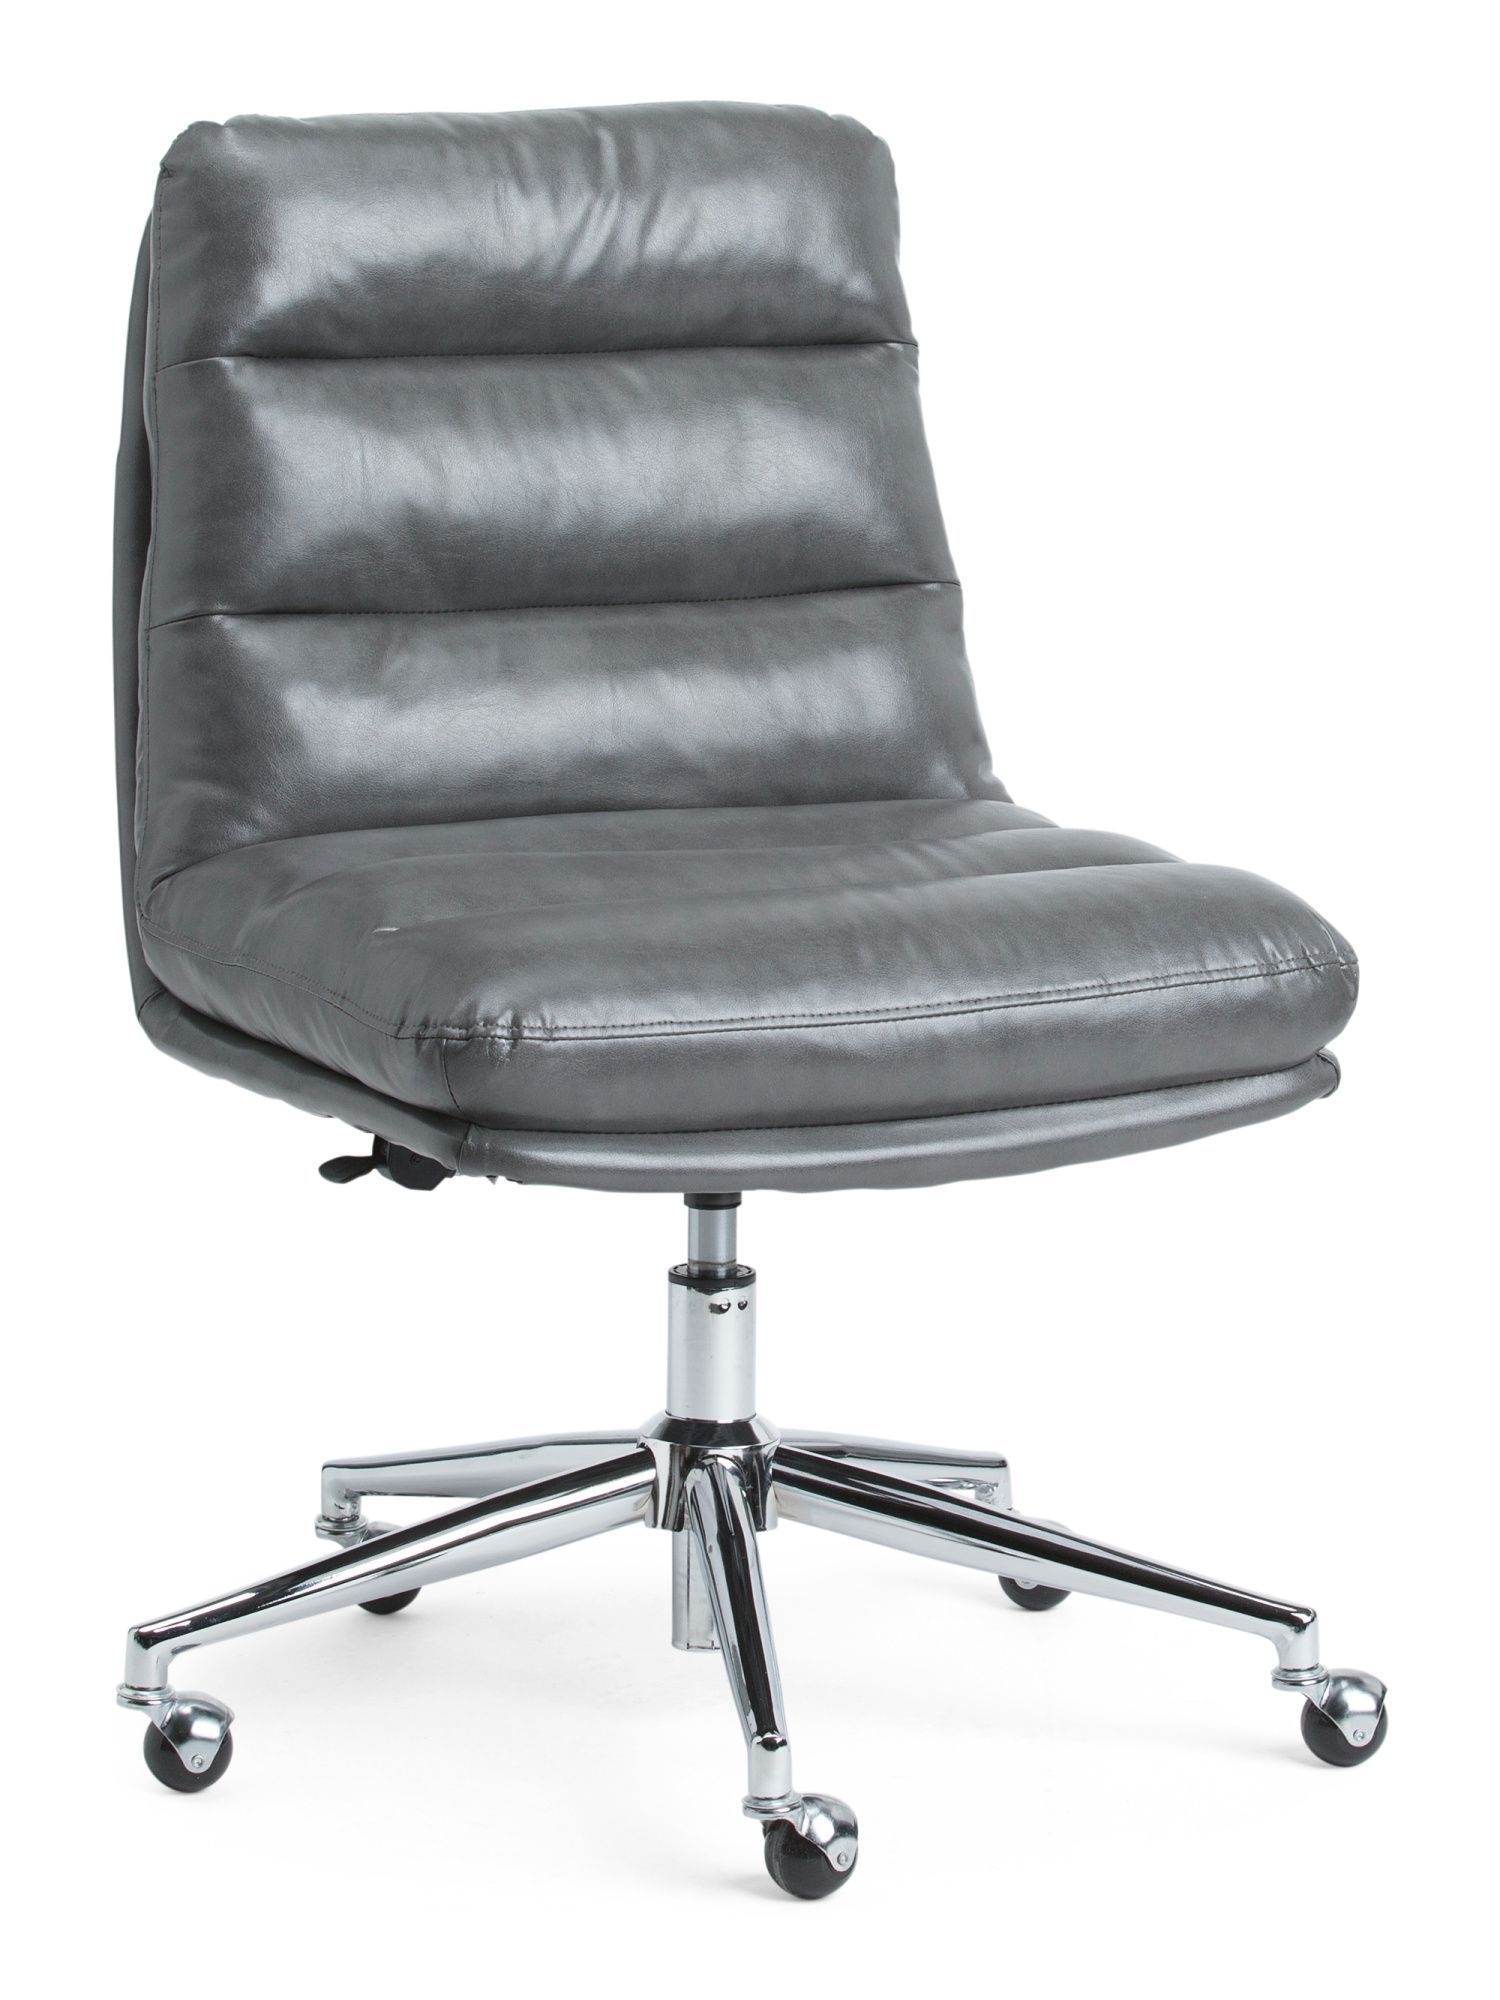 Legacy office chair chair restoration hardware chair